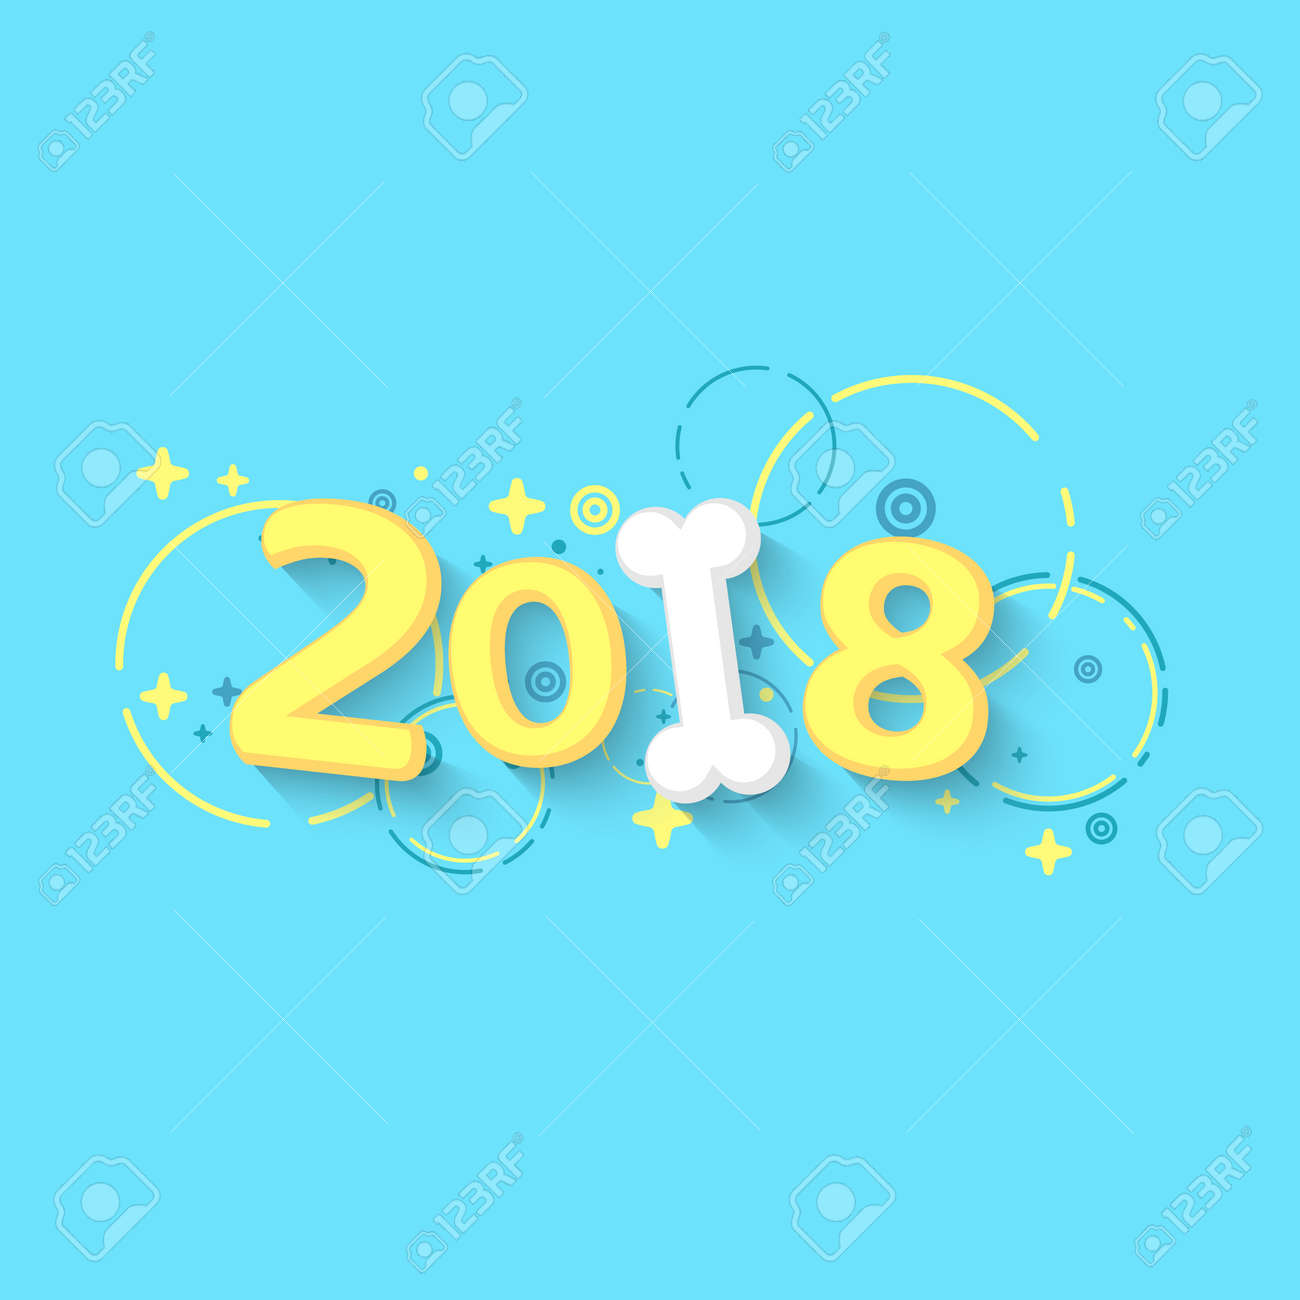 happy new year 2018 the year of the yellow earth dog cartoon figures and